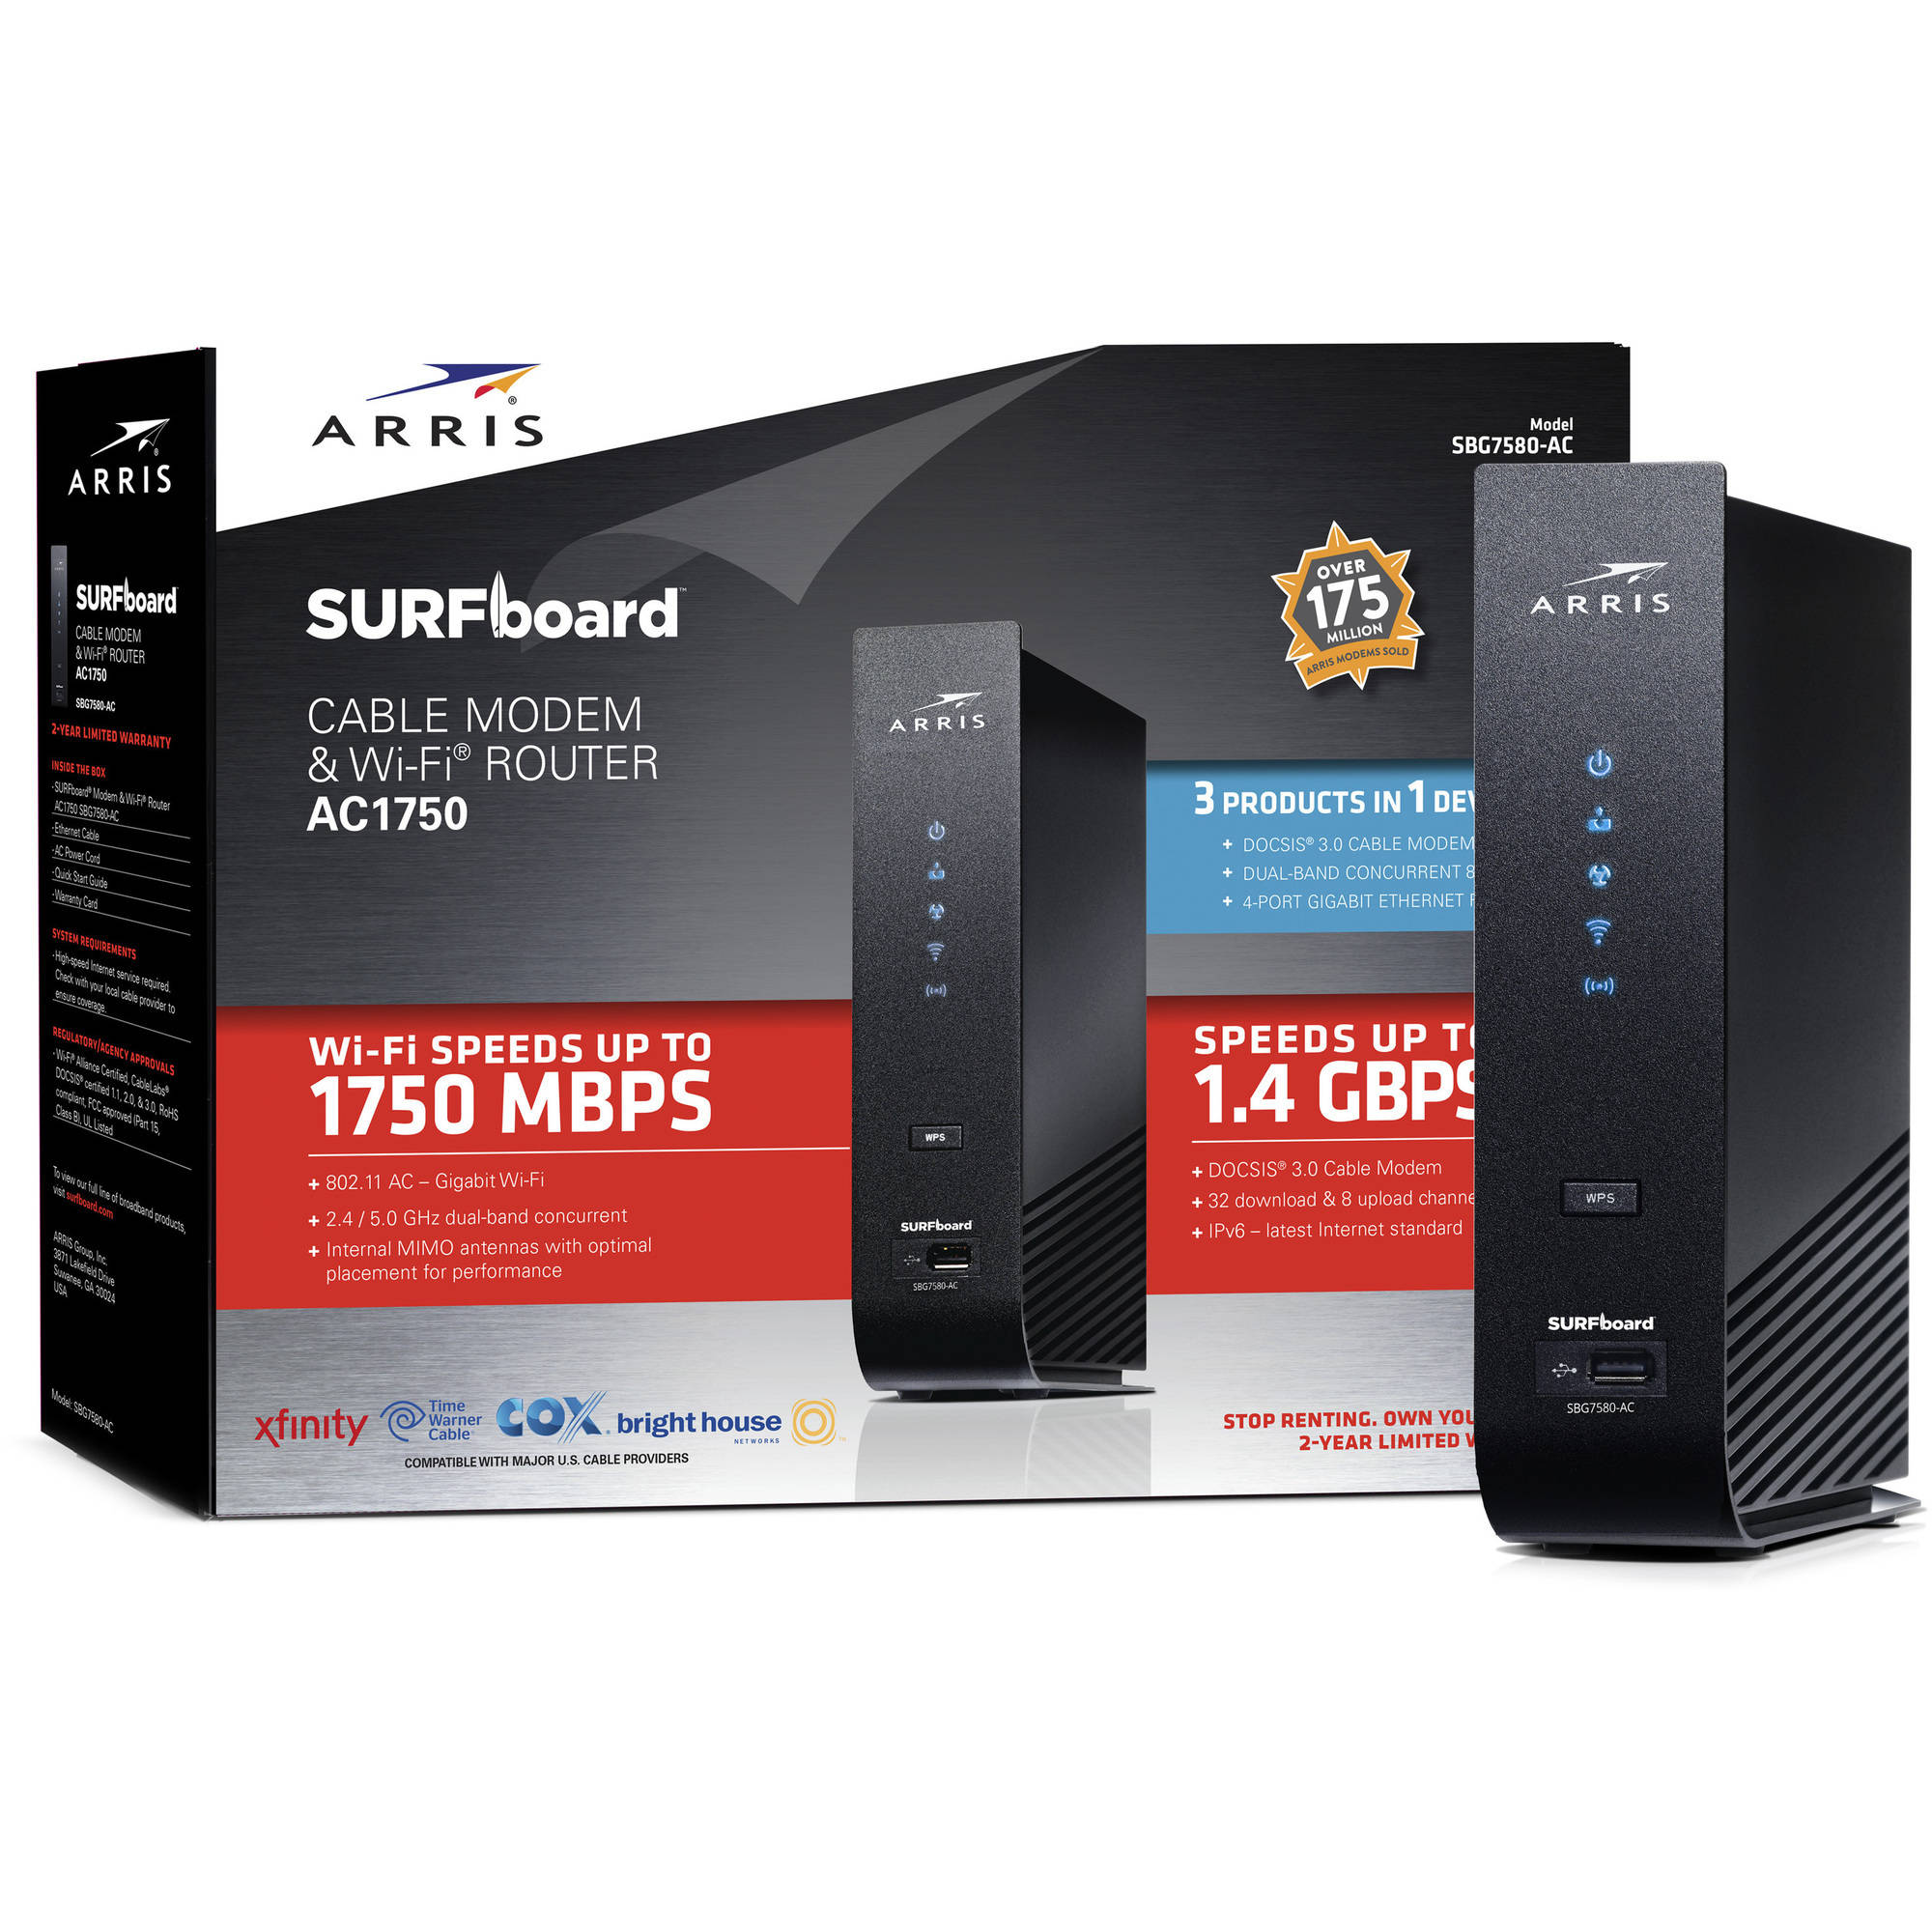 ARRIS SURFboard SBG7580-AC DOCSIS 3.0 Cable Modem/WiFi AC 1750 Router